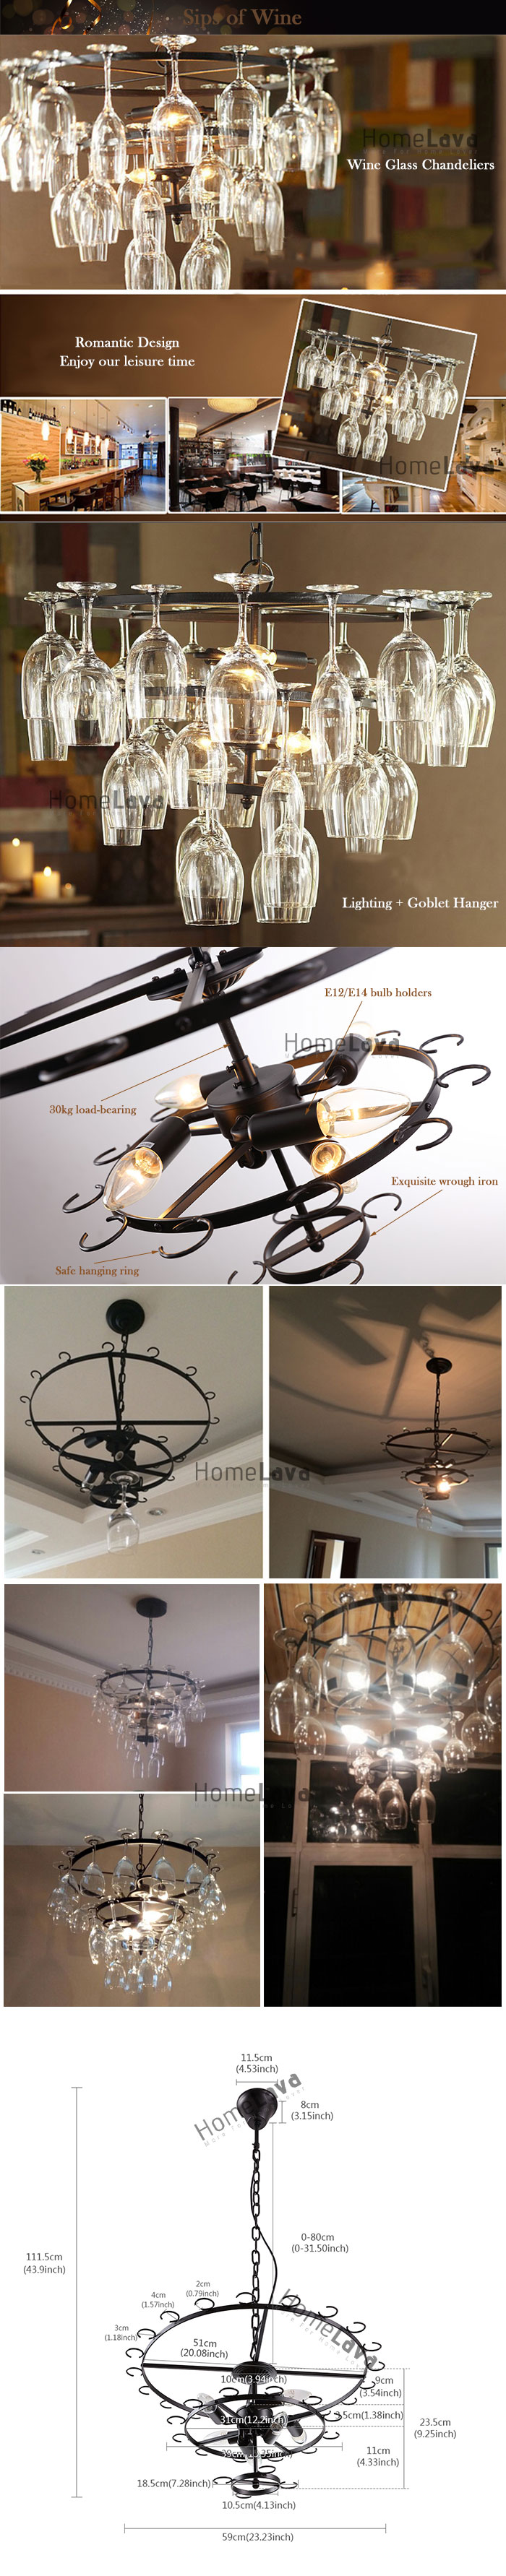 (In Stock) Ceiling Lights Wine Glass Chandelier 240W Pendant Lighting with 6 Lights in Wine Glass Feature (Wine Glass NOT Included)(Sips Of Wine)